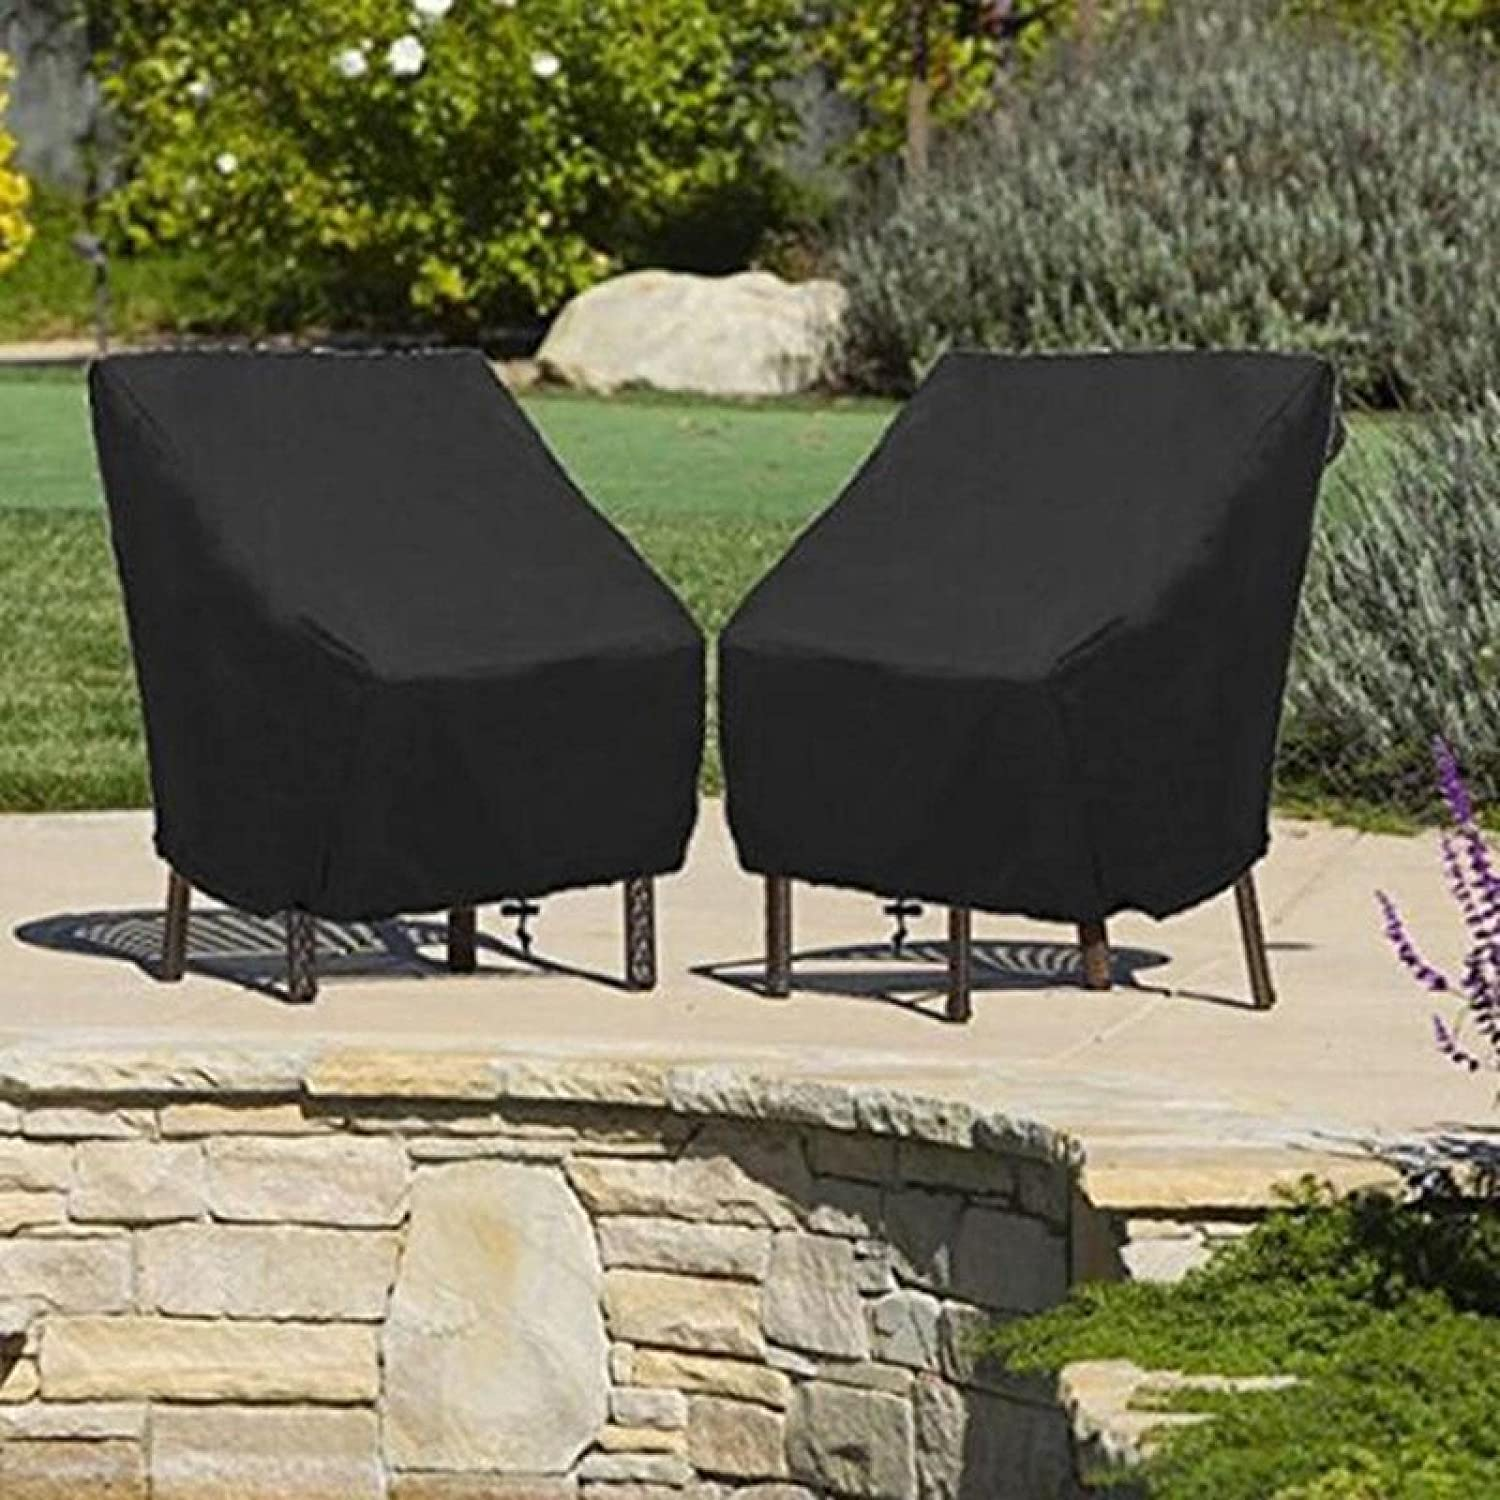 Patio Furniture Covers Rectangular New products world's highest quality Low price popular of 420D Outdoor